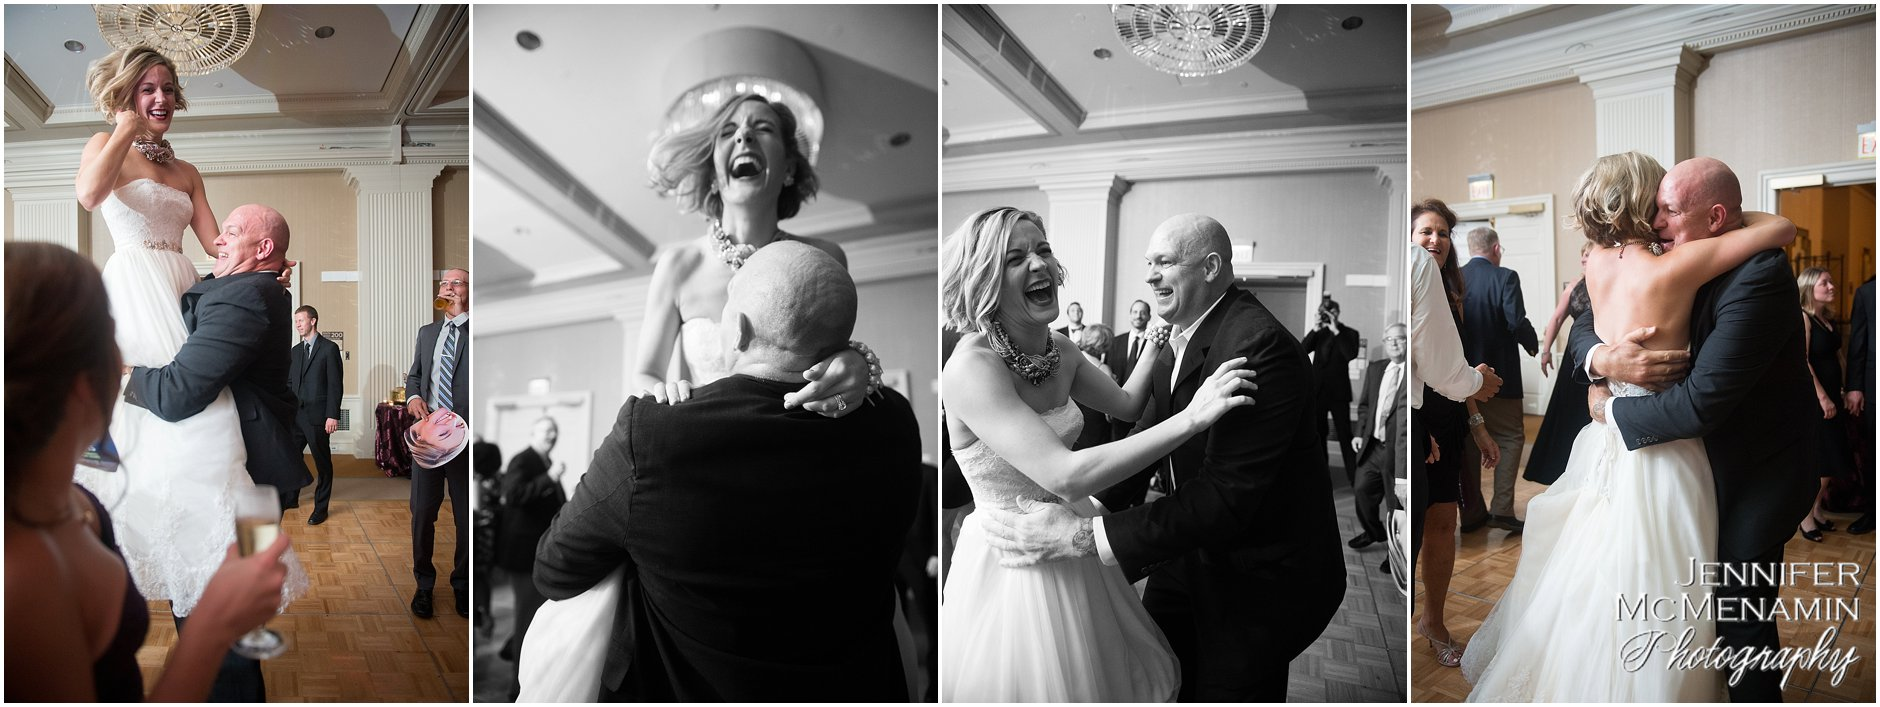 069-MorrisPustilnik_03099-0717_Jennifer-McMenamin-Photography-Royal-Sonesta-Harbor-Court-Hotel-wedding-Baltimore-wedding-photographer